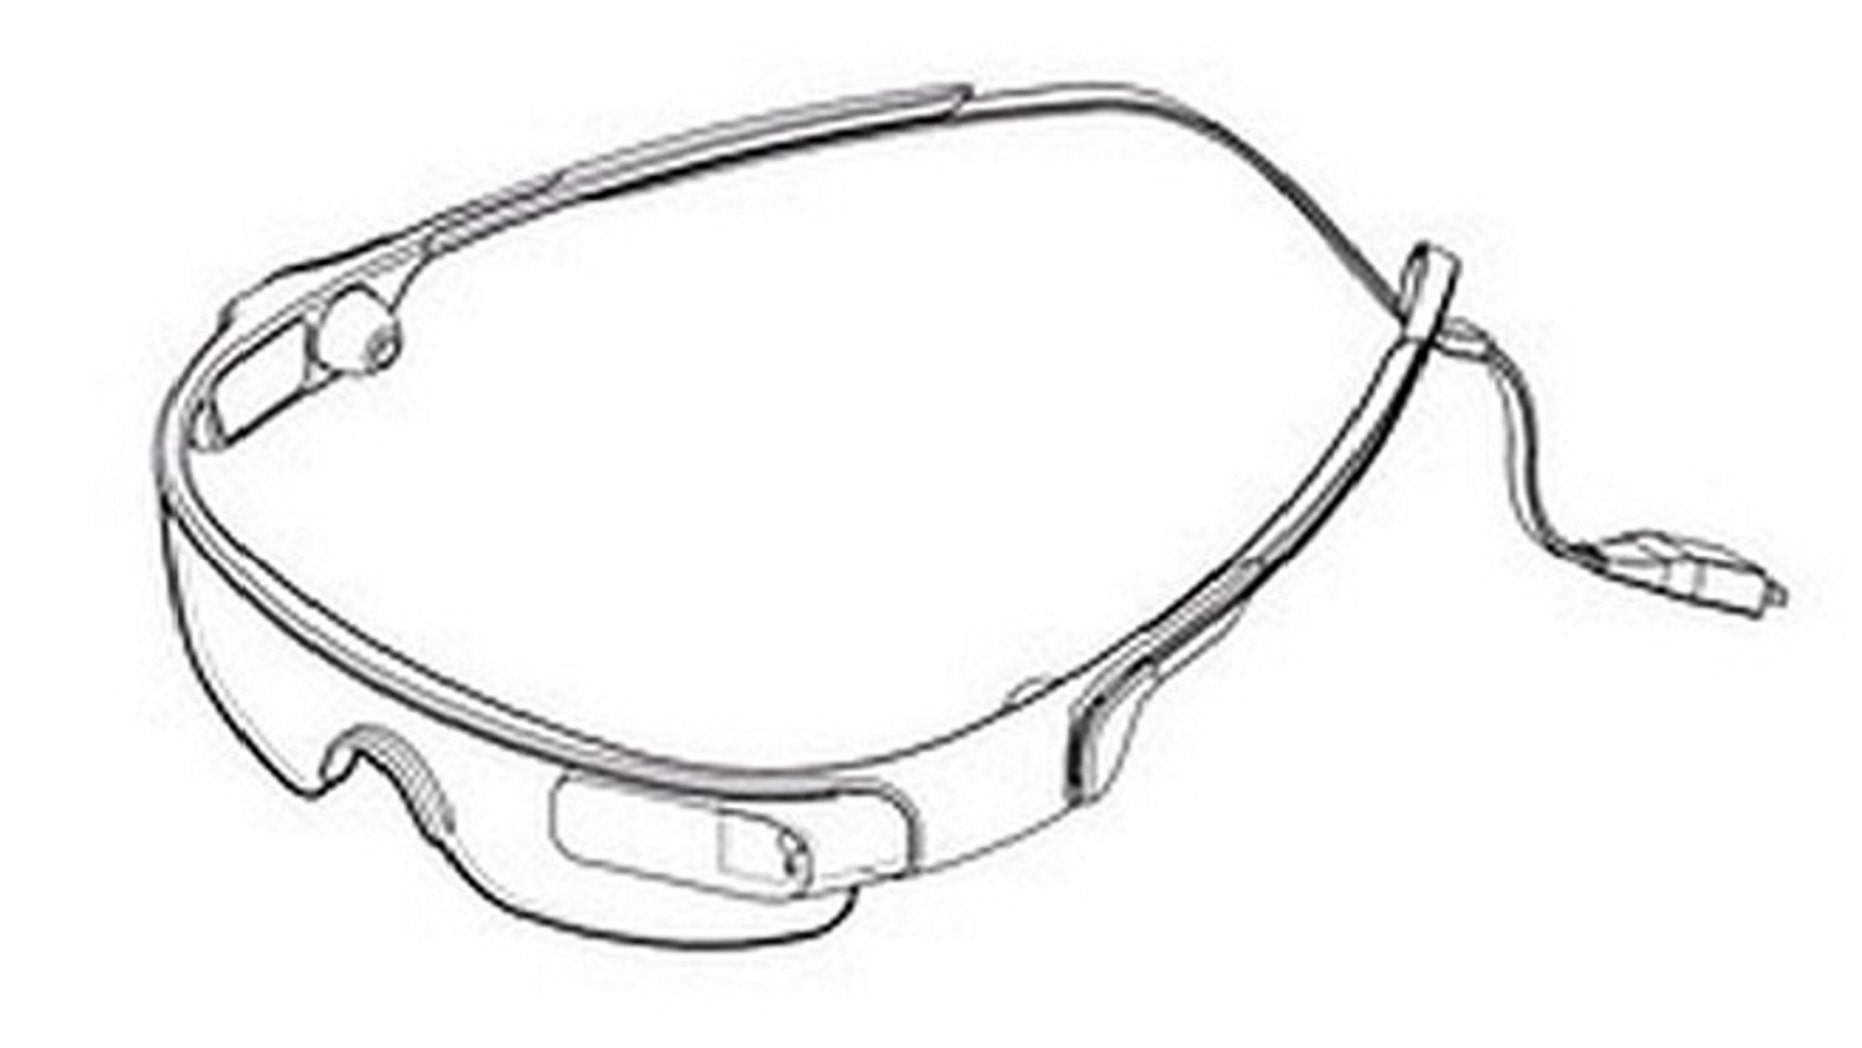 Samsung could be the latest company to rival Google in the wearable display market.